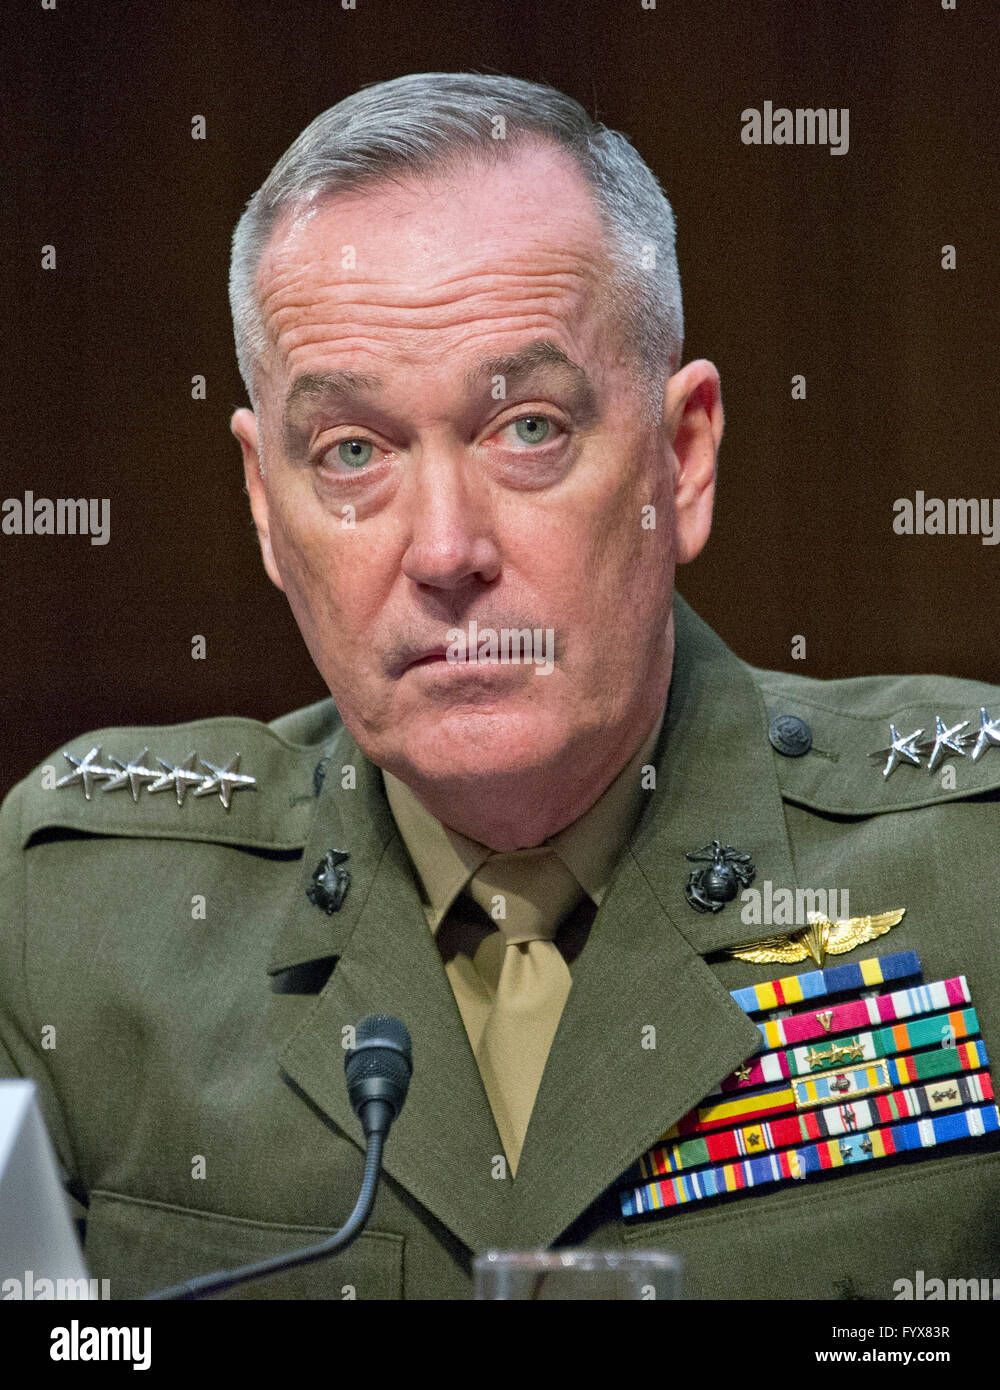 general joseph f dunford jr usmc chairman of the joint chiefs